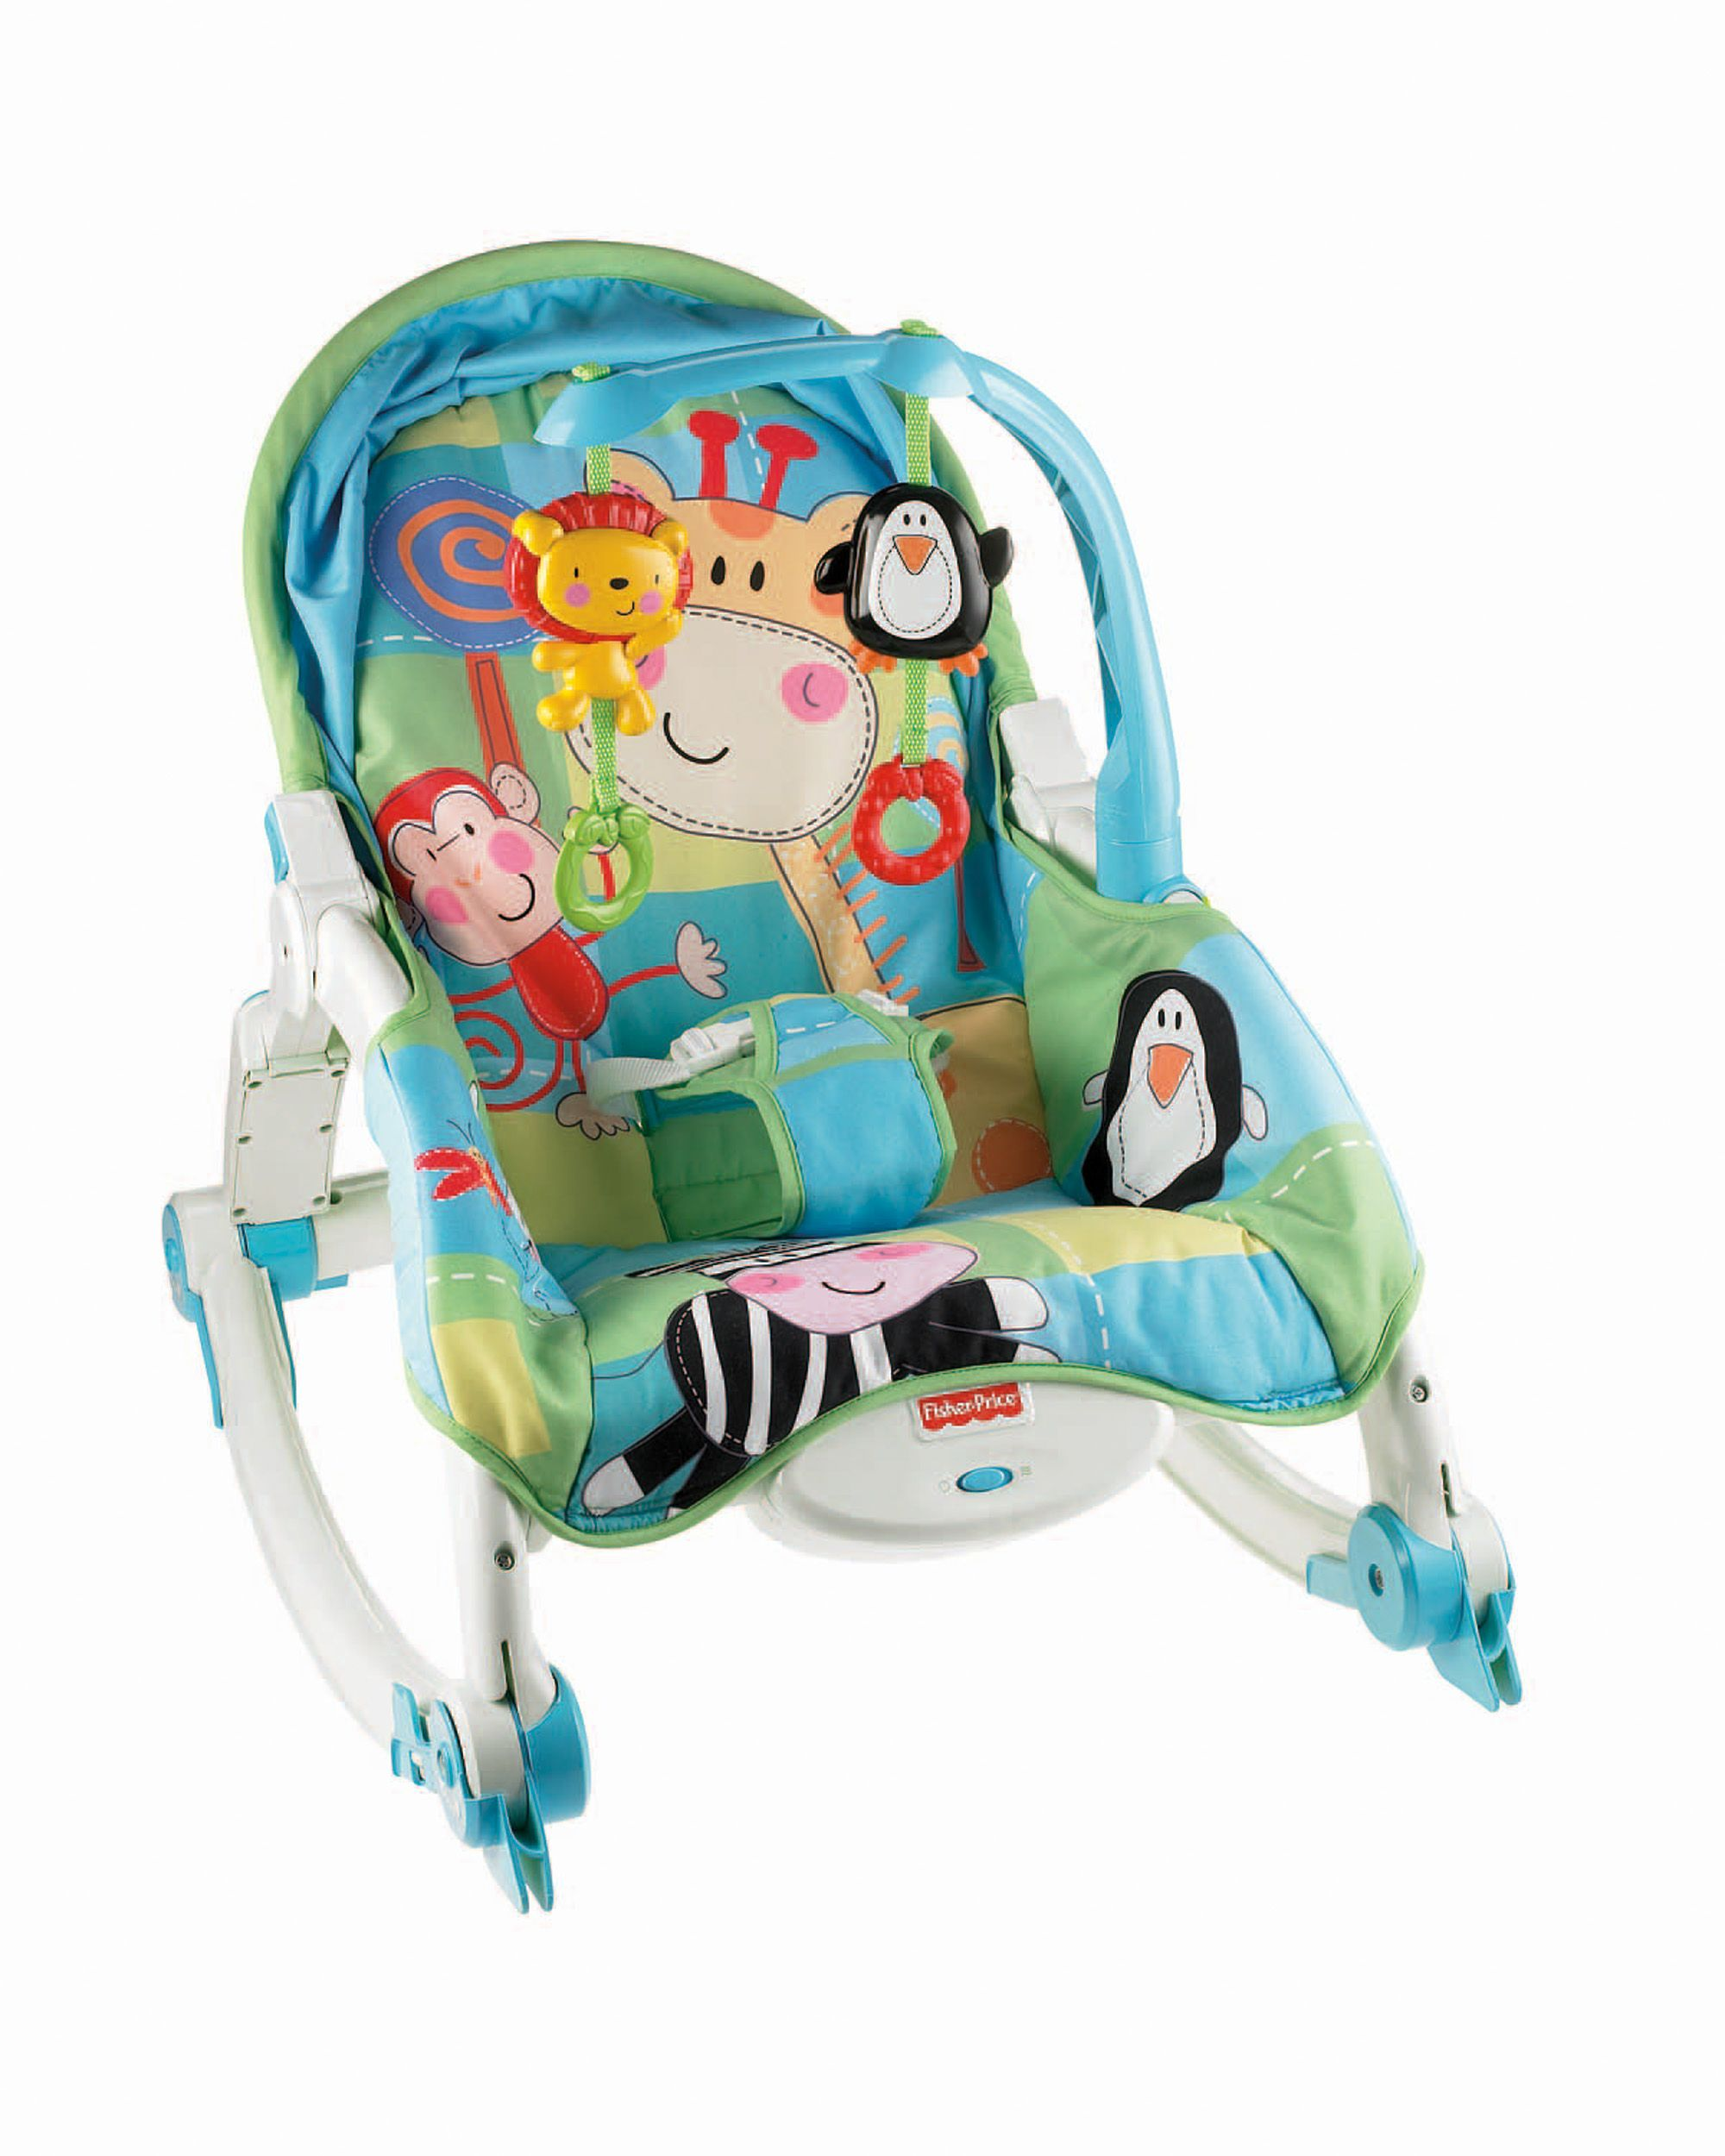 Uncategorized fisher price comfort curve bouncer new free shipping ebay - Fisher Price Discover And Grow Newborn To Toddler Rocker Available Online At Http